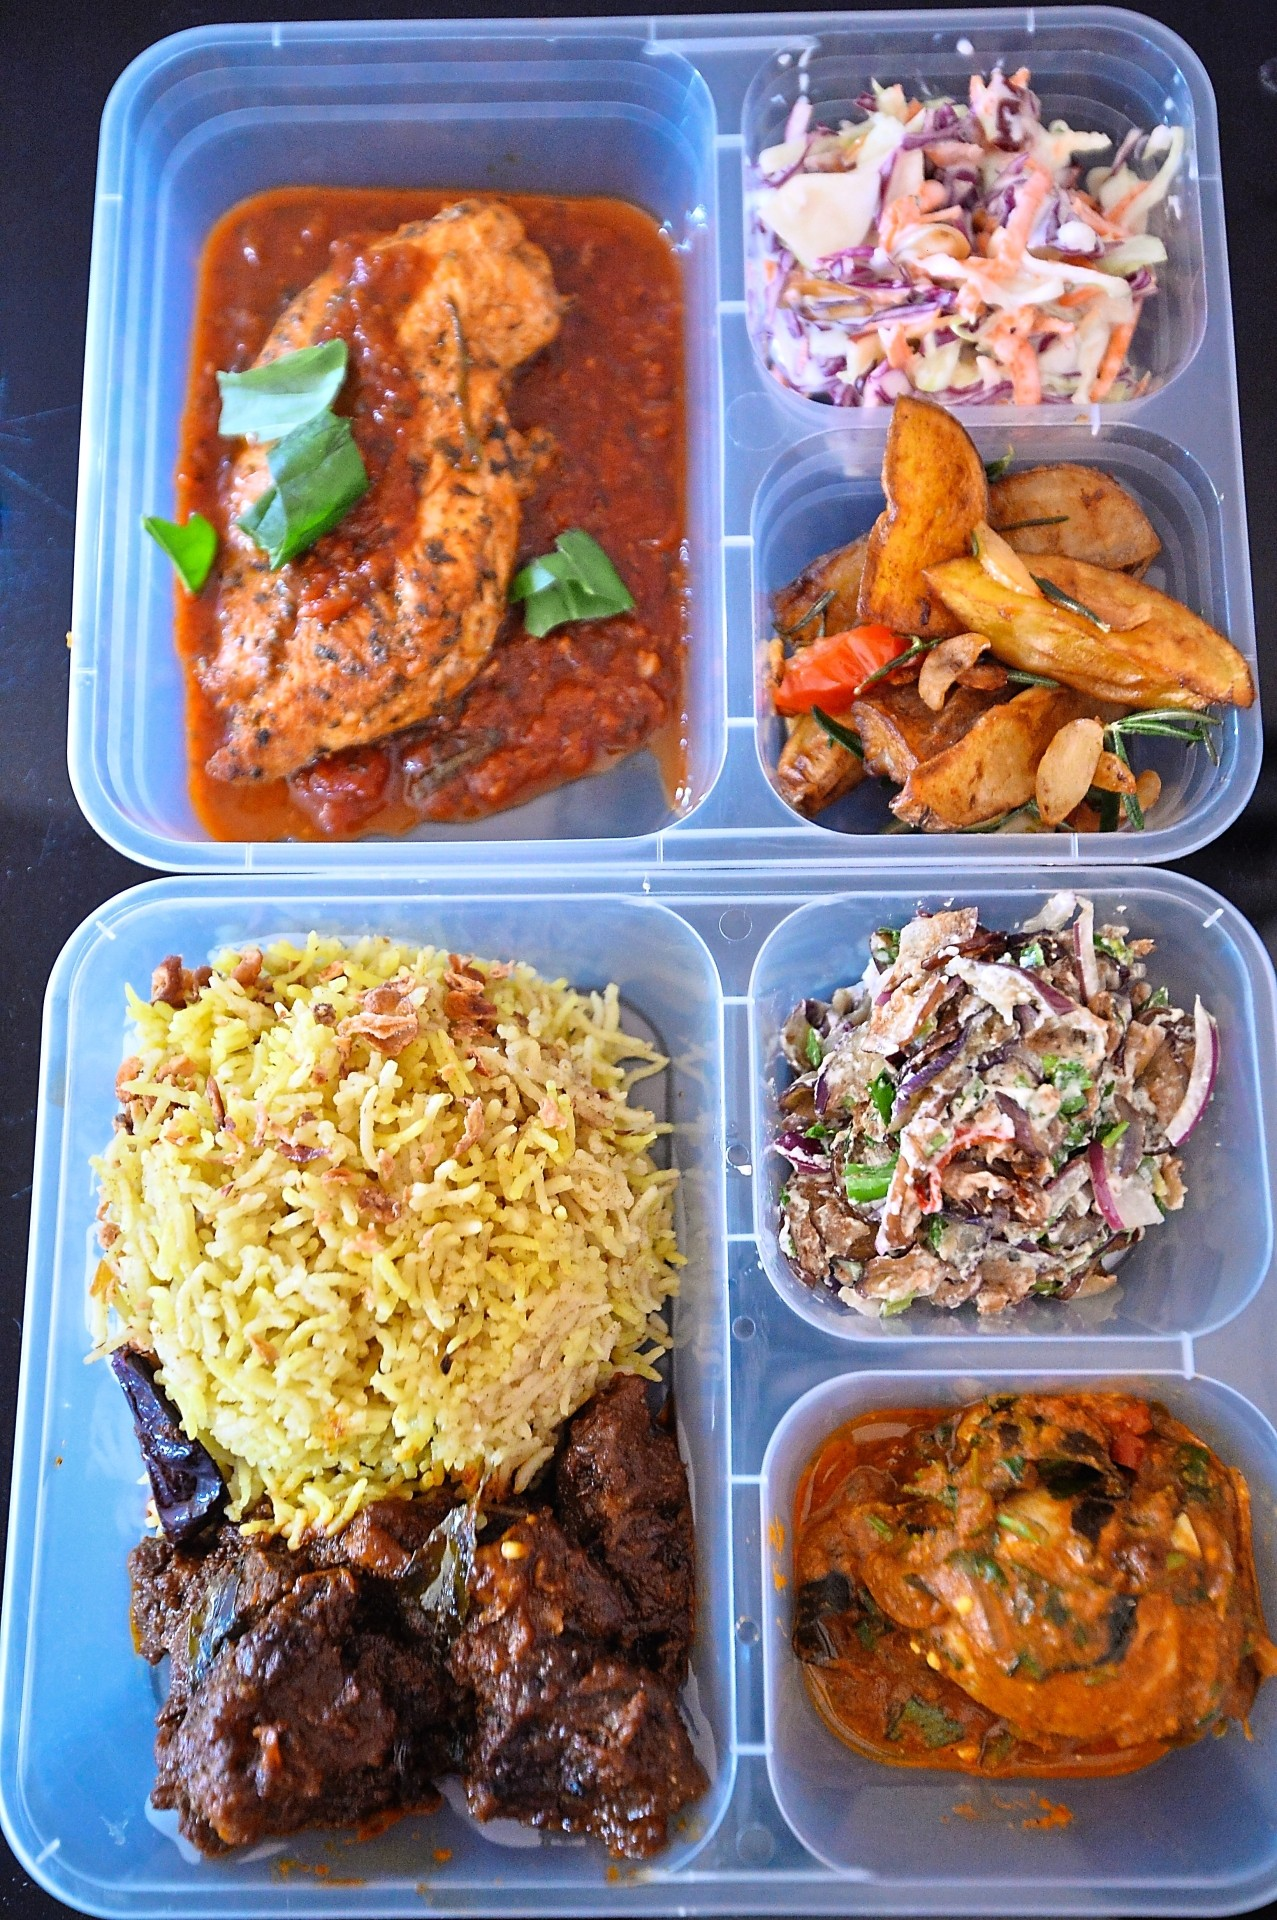 Each lunch box is packed with enough meat, vegetables and rice, or any  other form of carbohydrate. Sharmini also has vegetarian options.